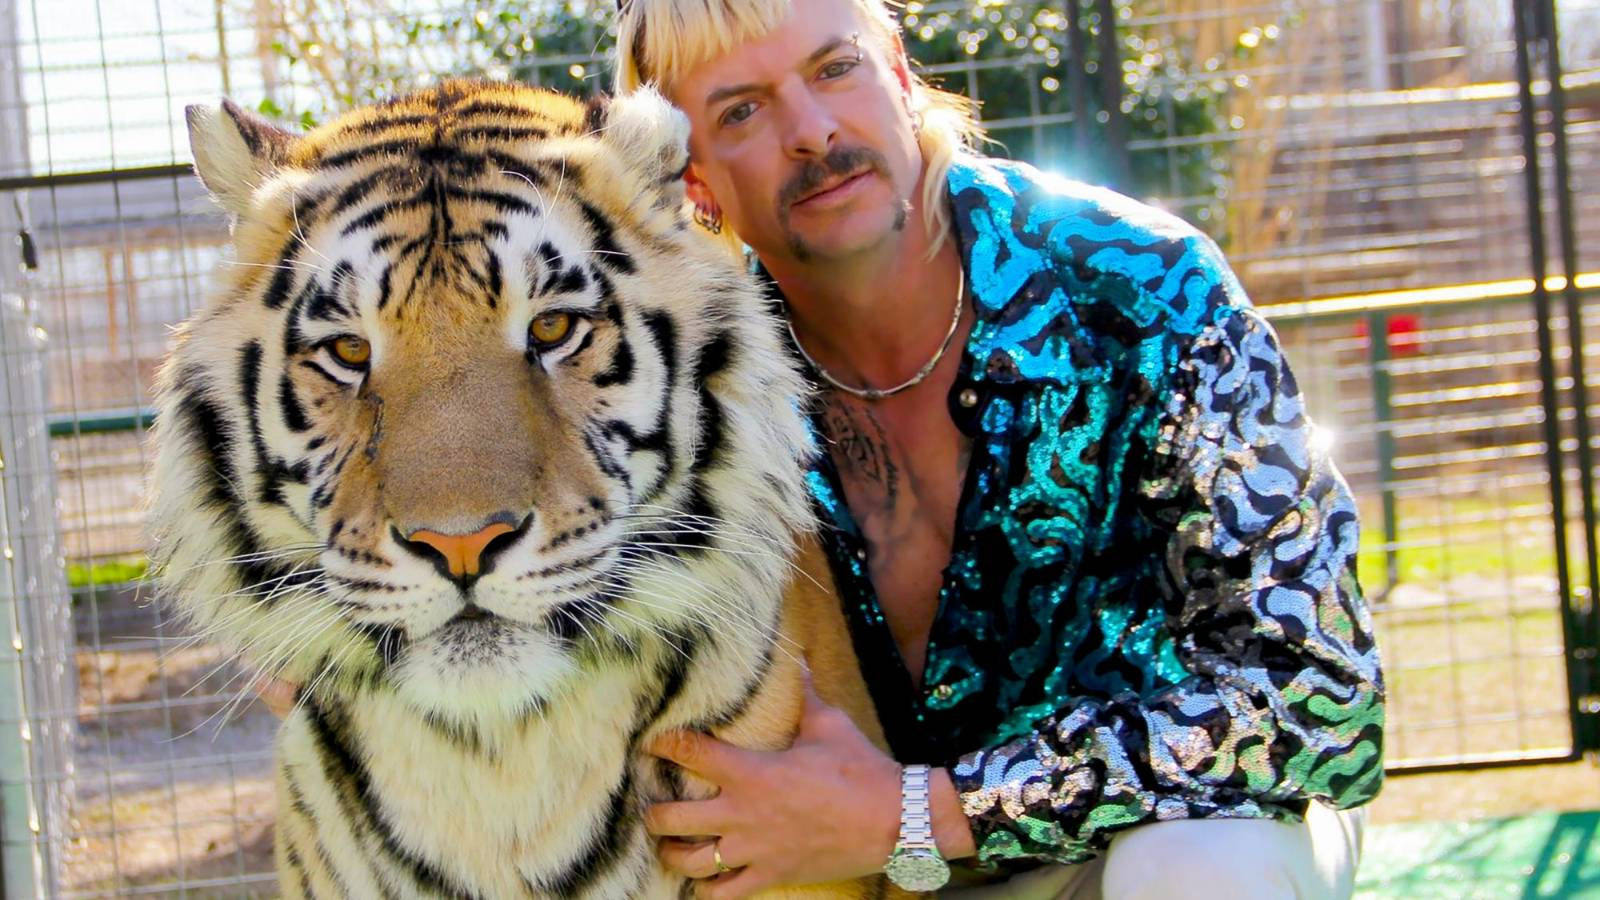 Joe Exotic remains behind bars